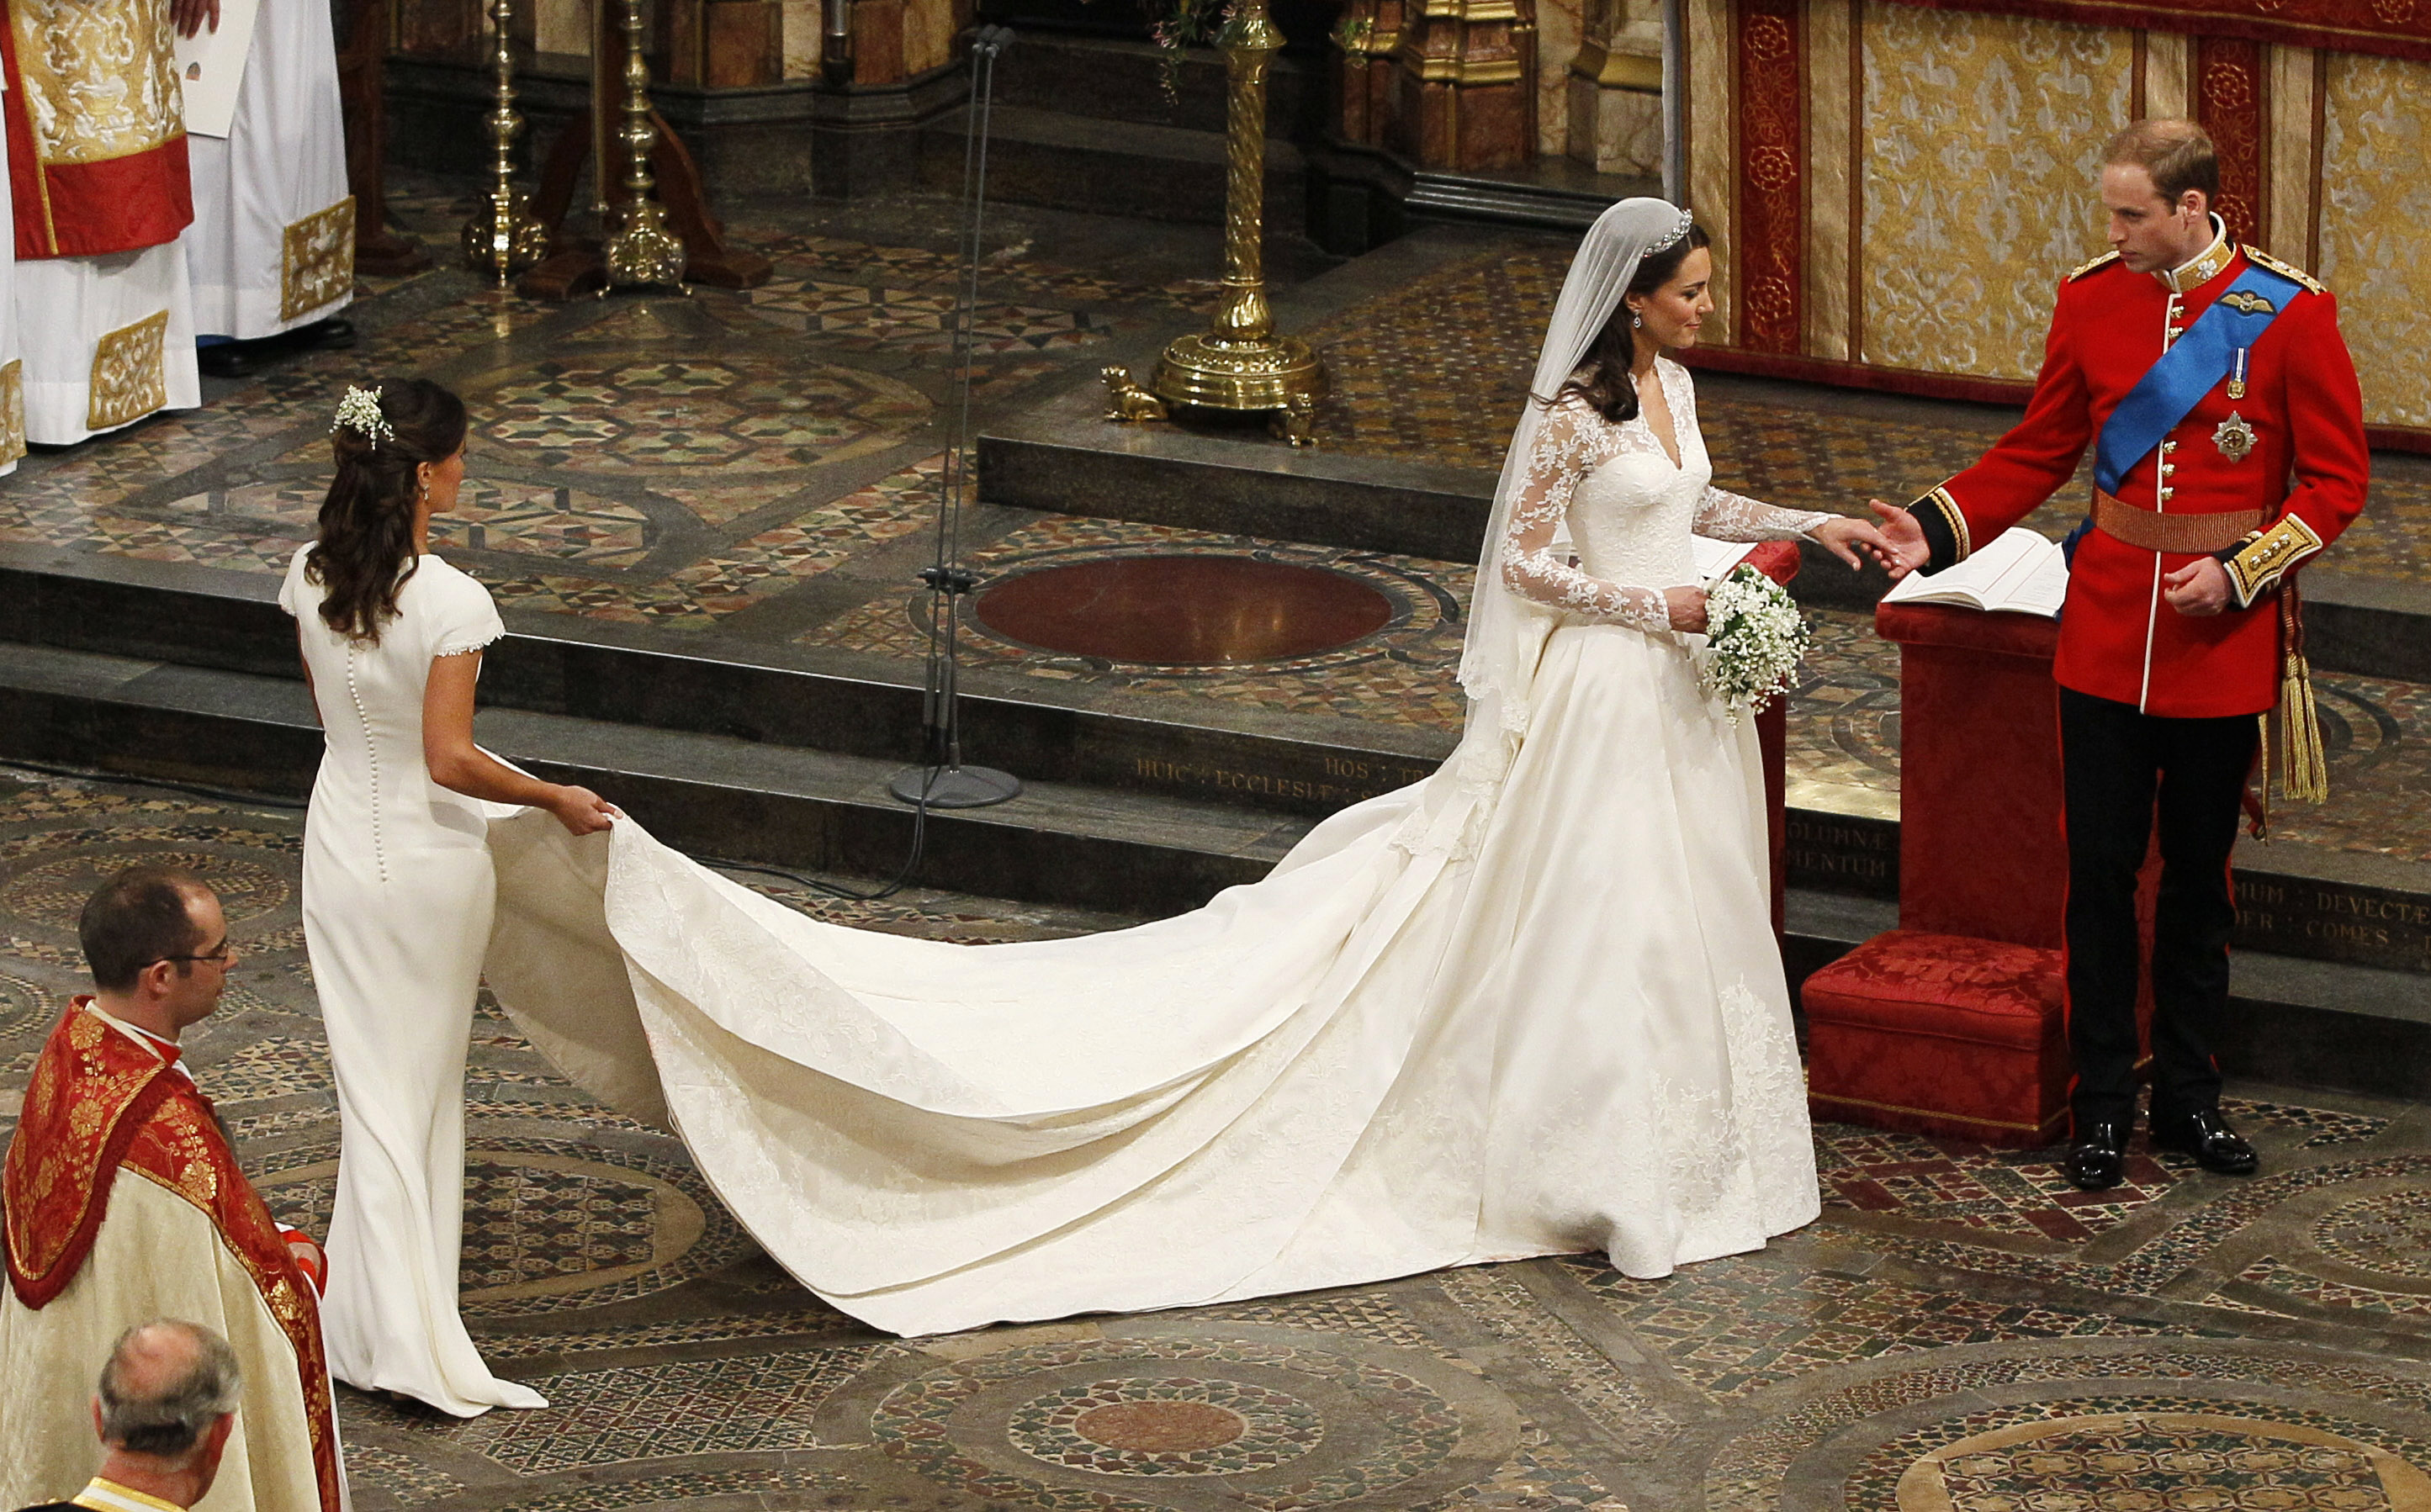 Maid of Honour, Pippa Middleton (L) holds the wedding dress of her sister Catherine, Duchess of Cambridge, after her she married Britain's Prince William at Westminster Abbey, in central London April 29, 2011. Prince William married his fiancee, Kate Middleton, in Westminster Abbey on Friday. (ROYAL WEDDING/SERVICE) RREUTERS/Kirsty Wigglesworth/Pool (BRITAIN - Tags: ENTERTAINMENT SOCIETY ROYALS) - LR2E74T172DAA